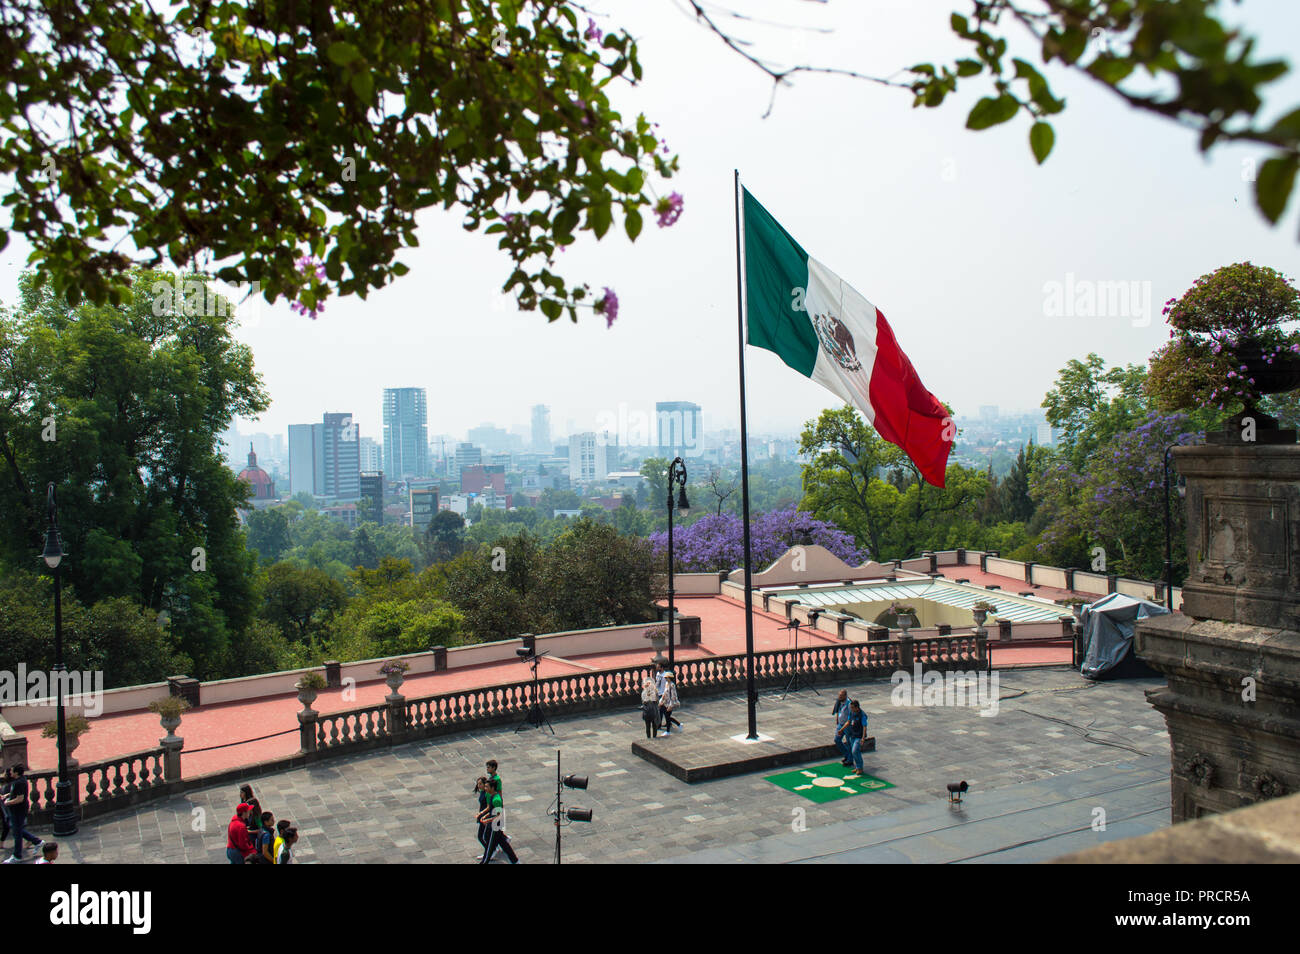 Mexico City view from the top of the Chapultepec castle. Mexico City. - Stock Image